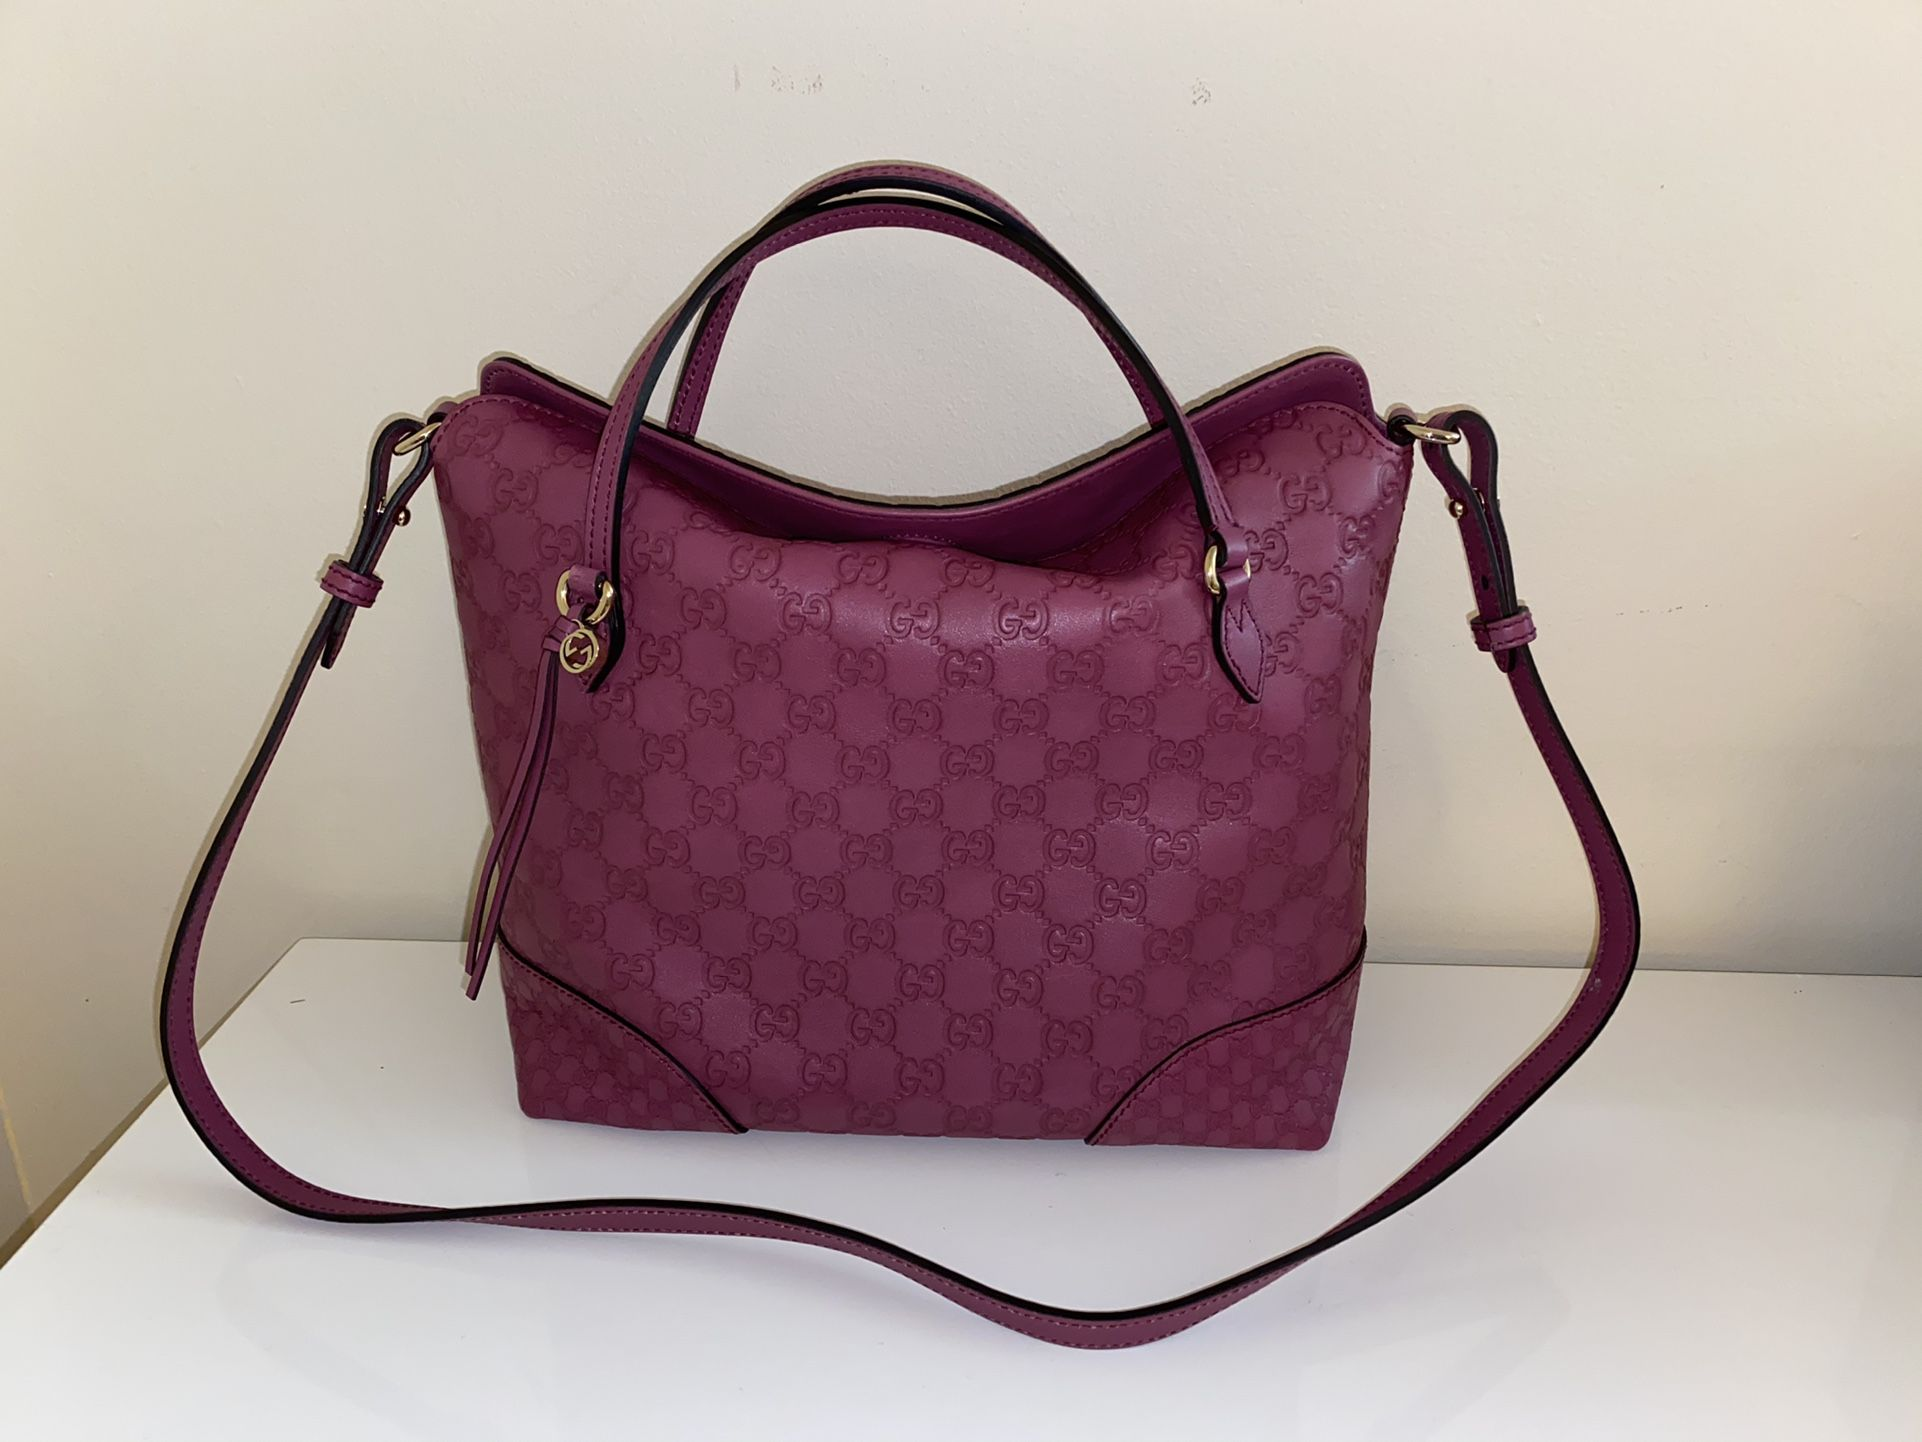 Authentic Gucci Bree Top Handle Convertible Tote Bag